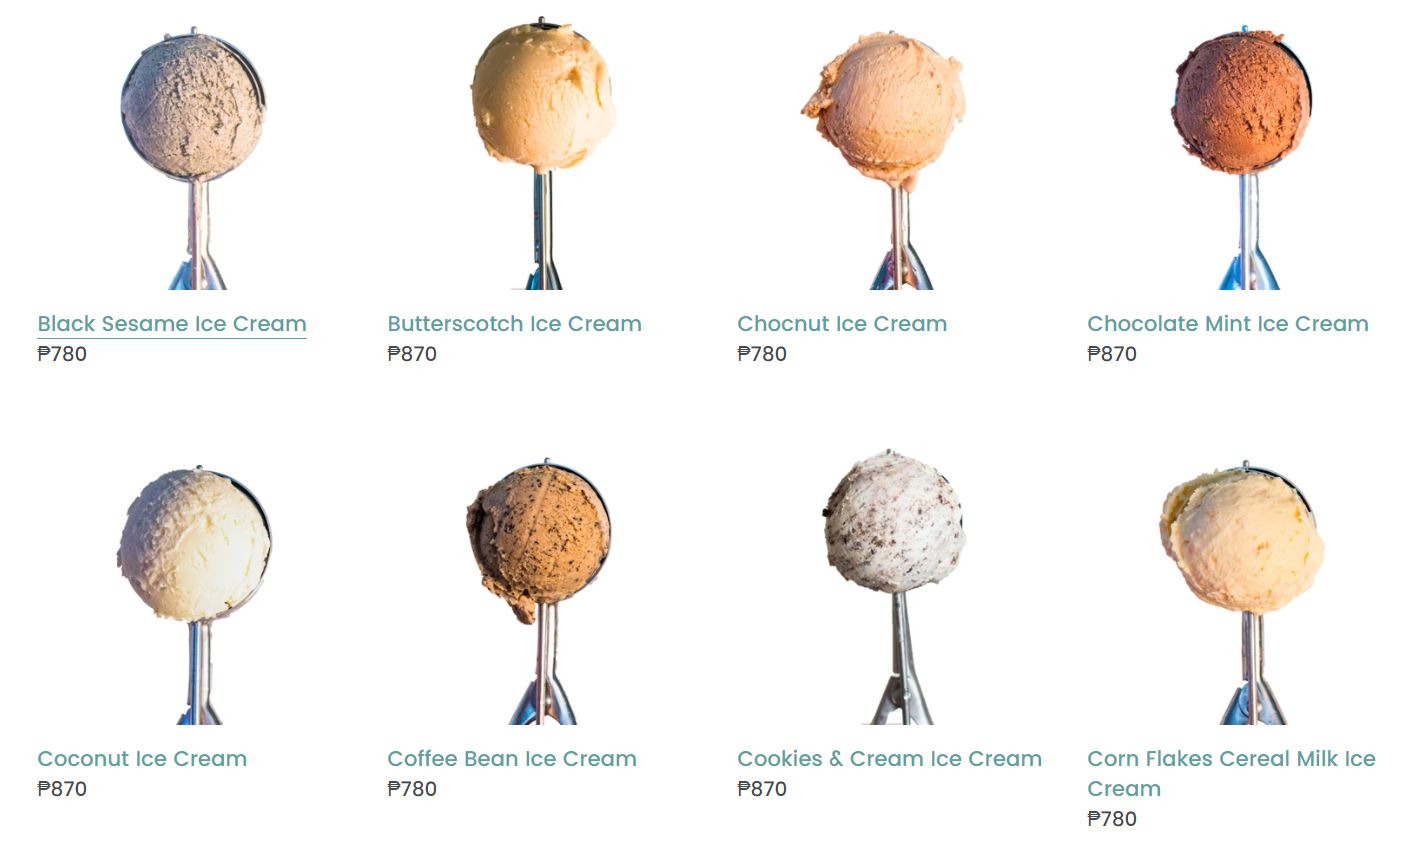 The Dairy Grind ice cream - base flavors